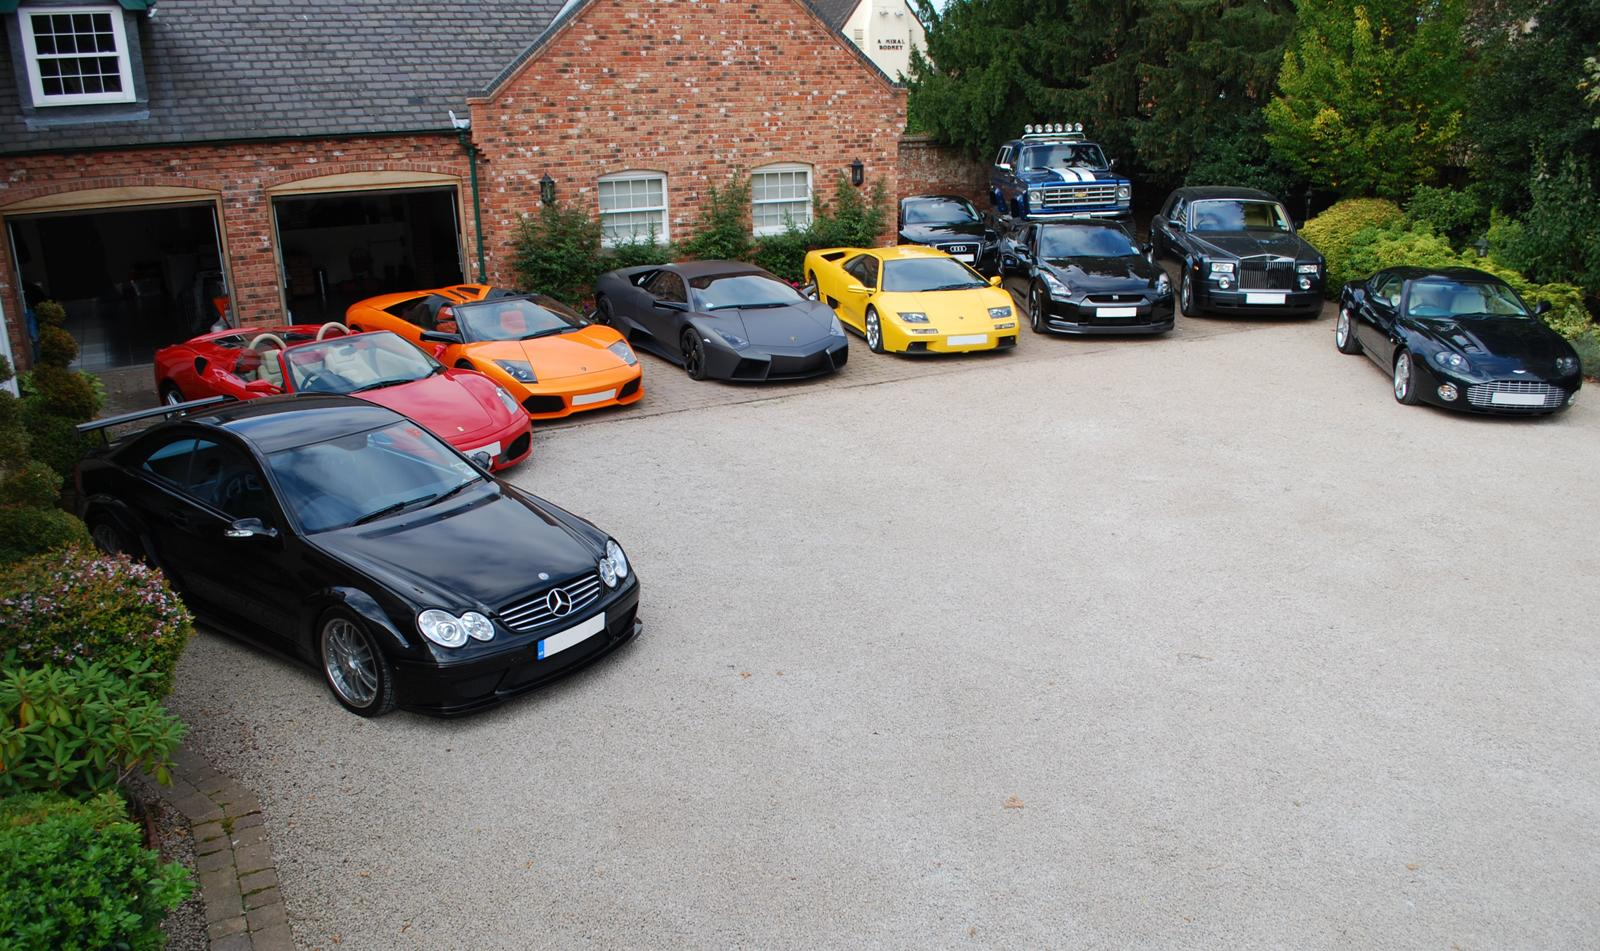 droolworthy supercars and amazing garages  be prepared to